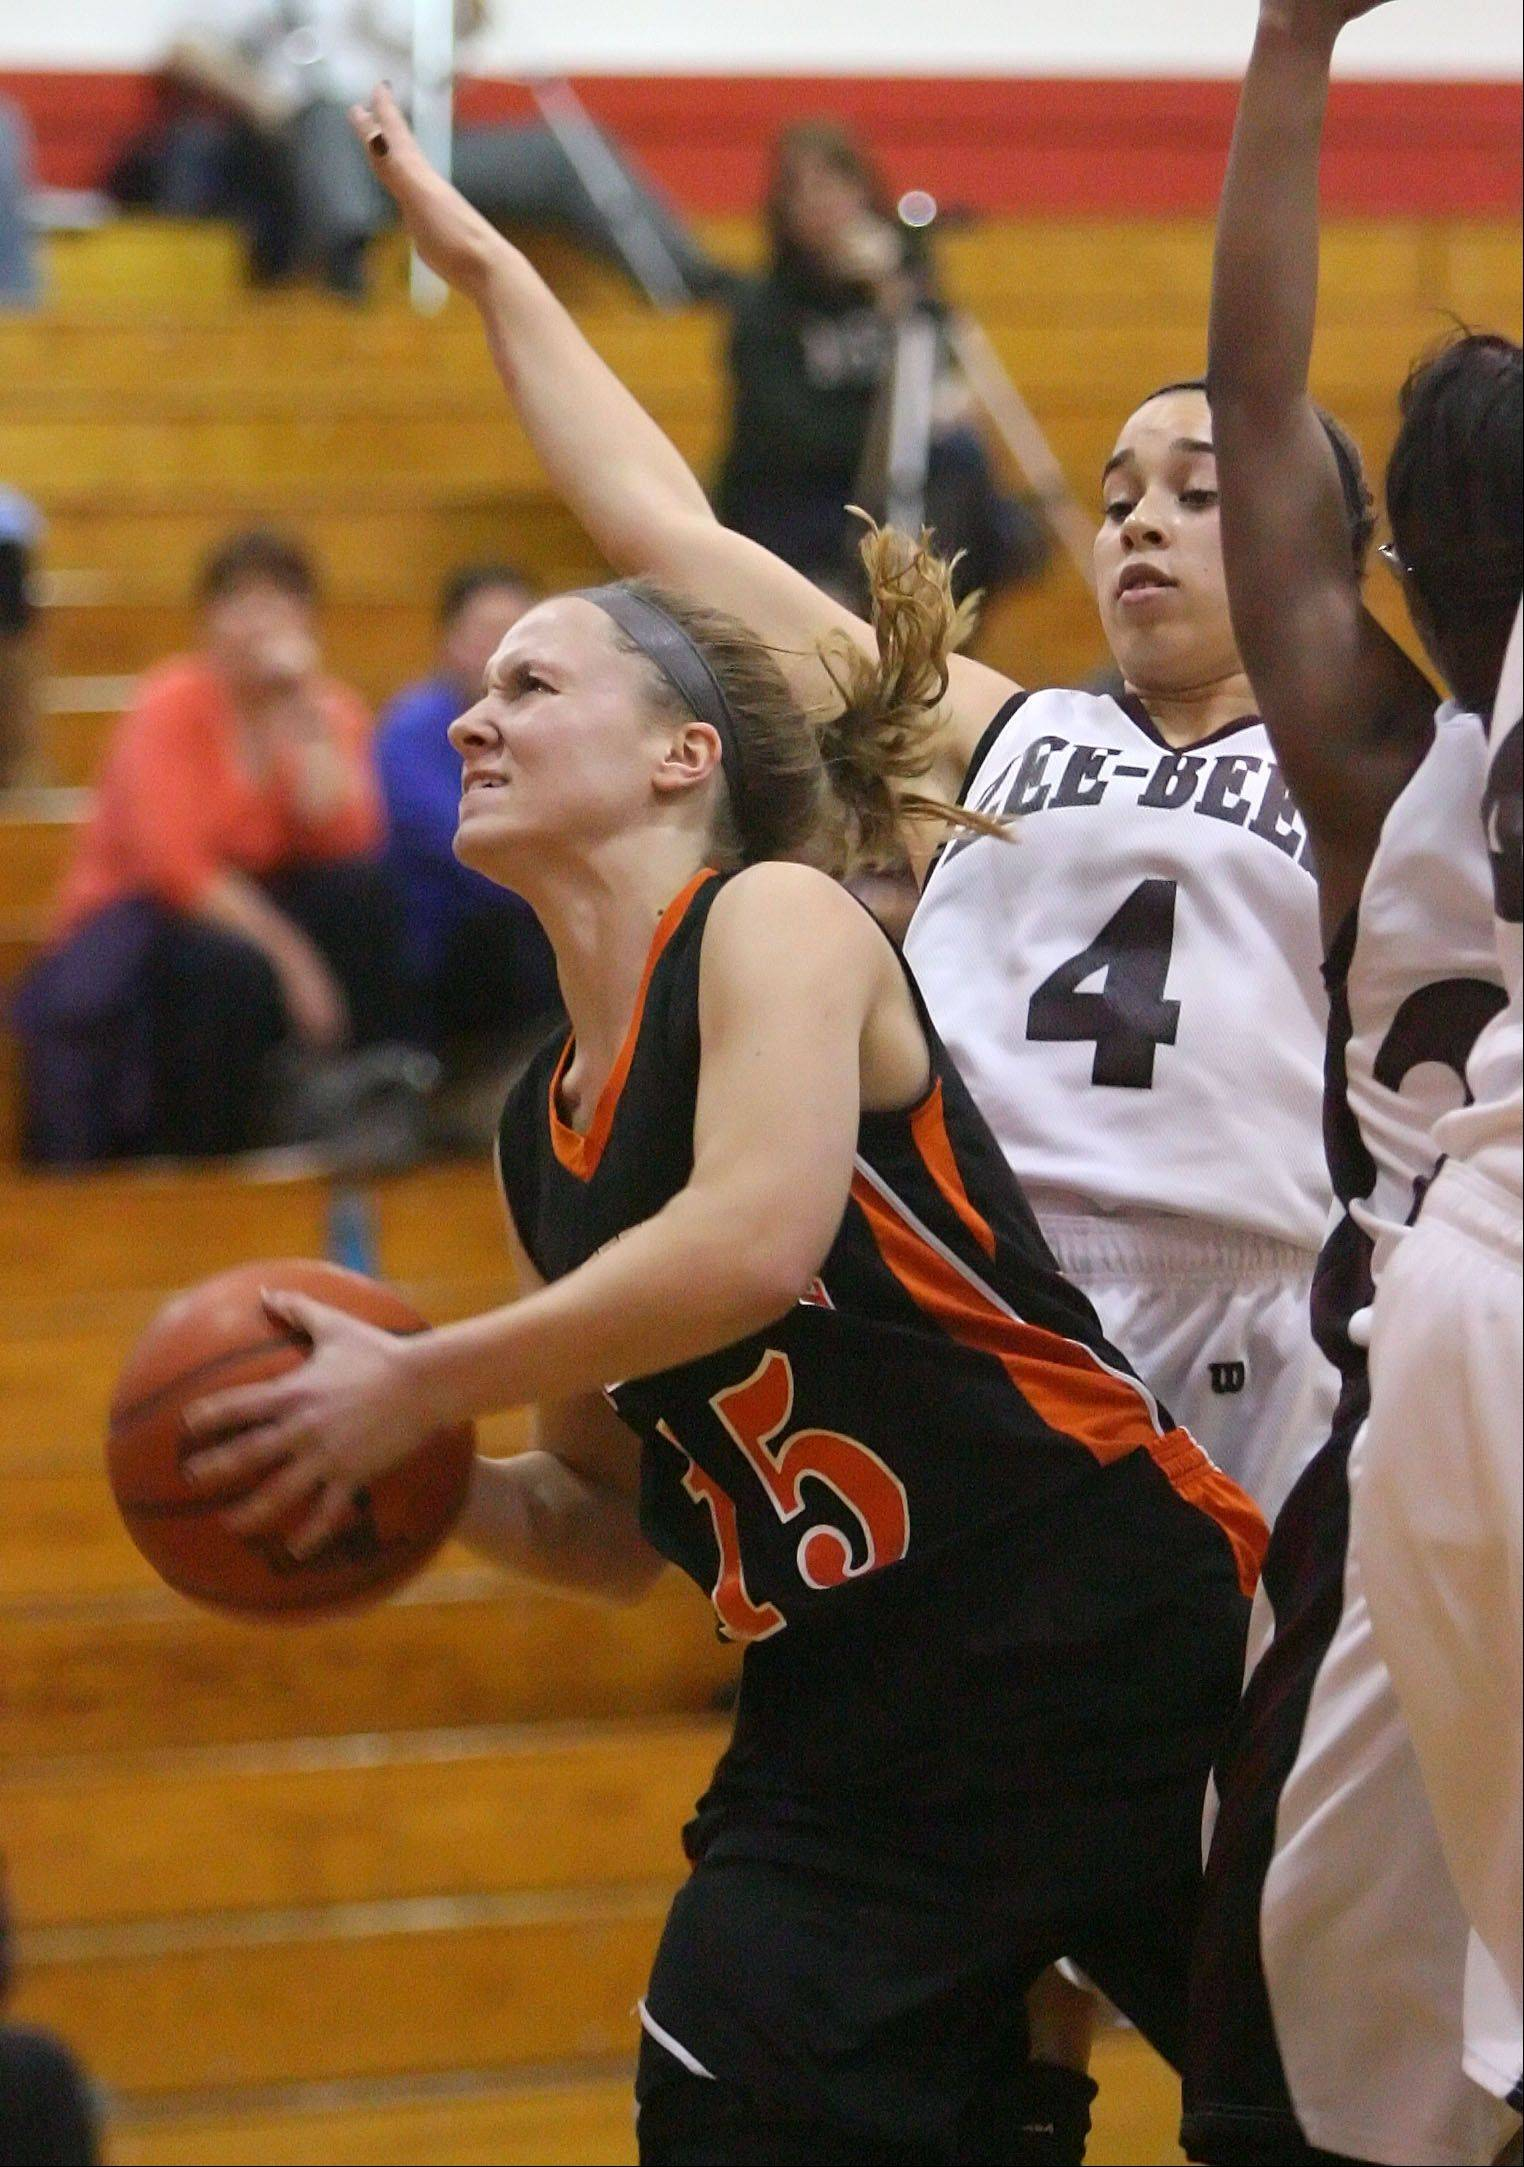 Libertyville's Alex Haley, left, drives on Zion-Benton's Morgan Franklin .